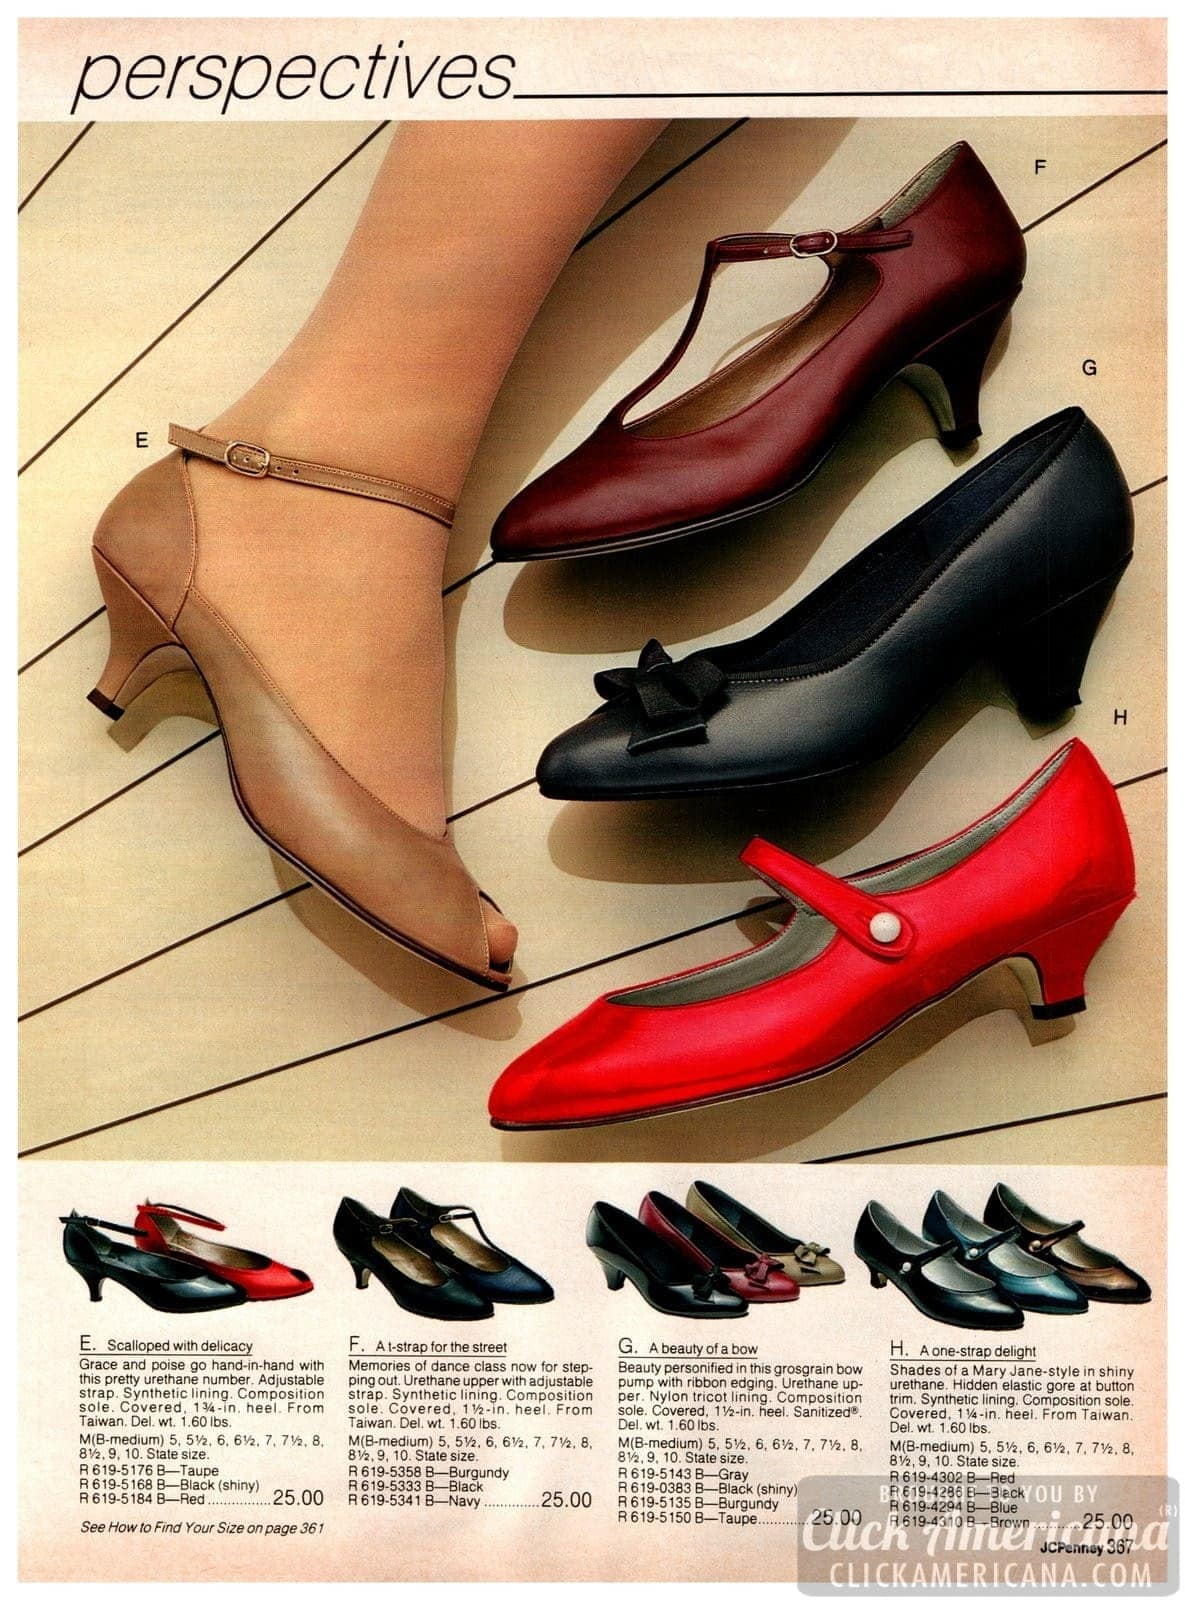 Vintage T-strap shoes, bow-toe heels and strappy low-heel pumps for ladies